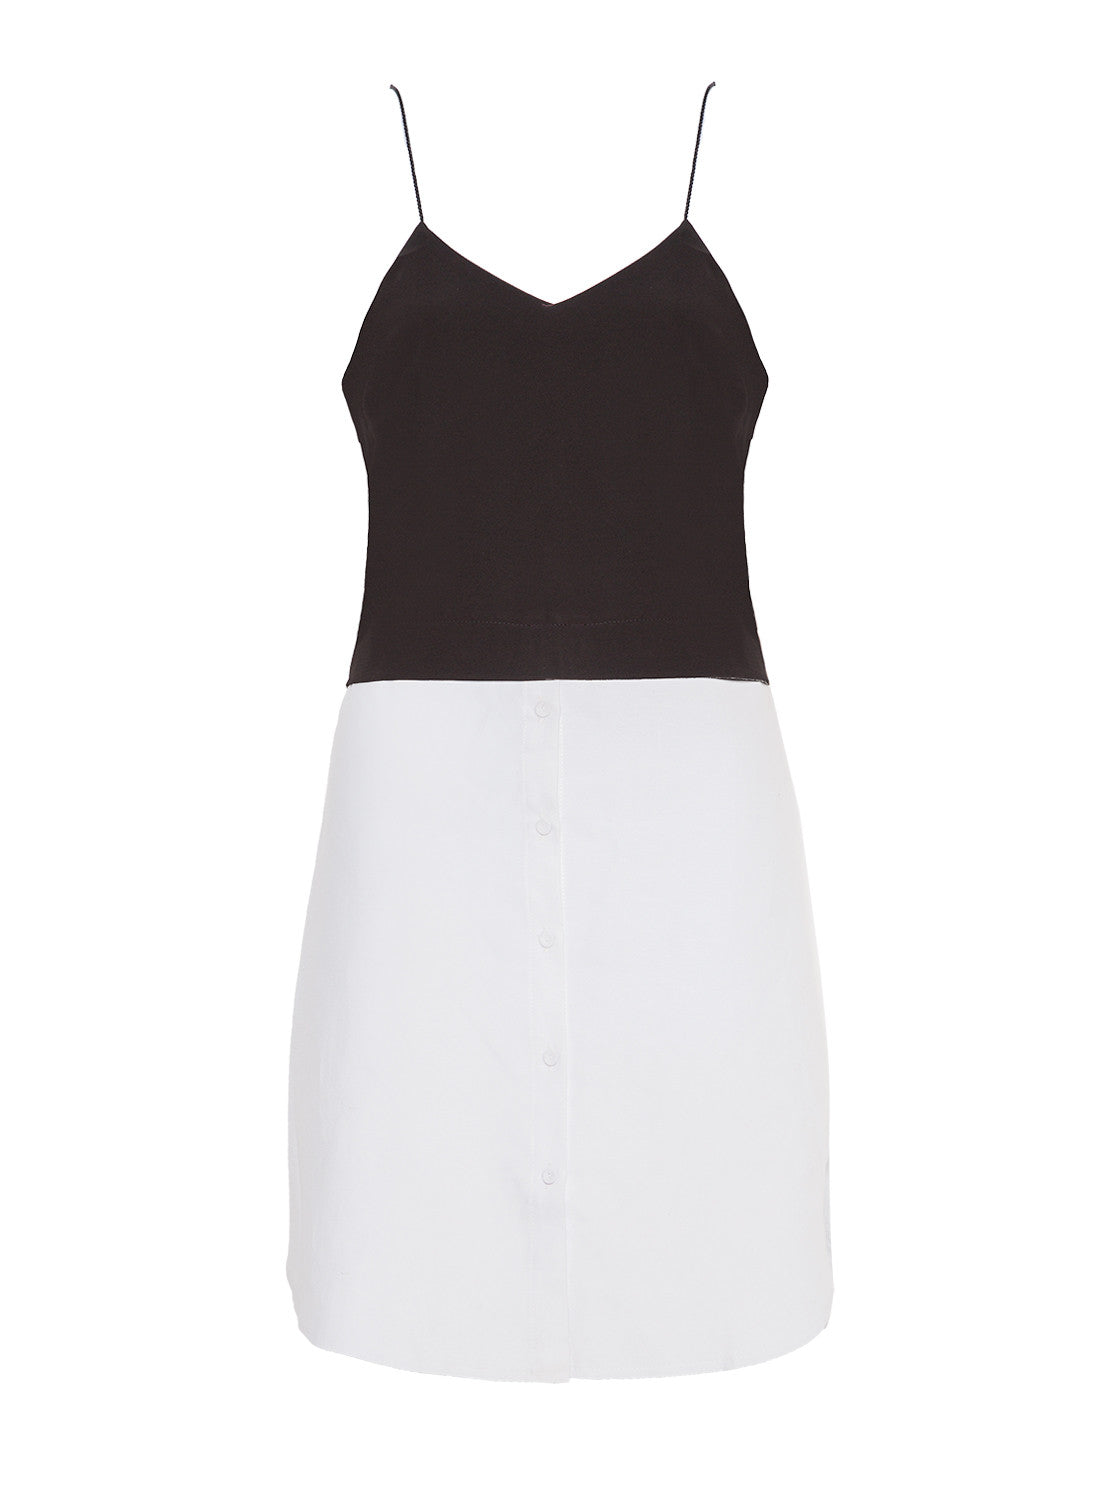 Button Me Up Baby Black and White Dress | Shop Dresses At Pale Violet